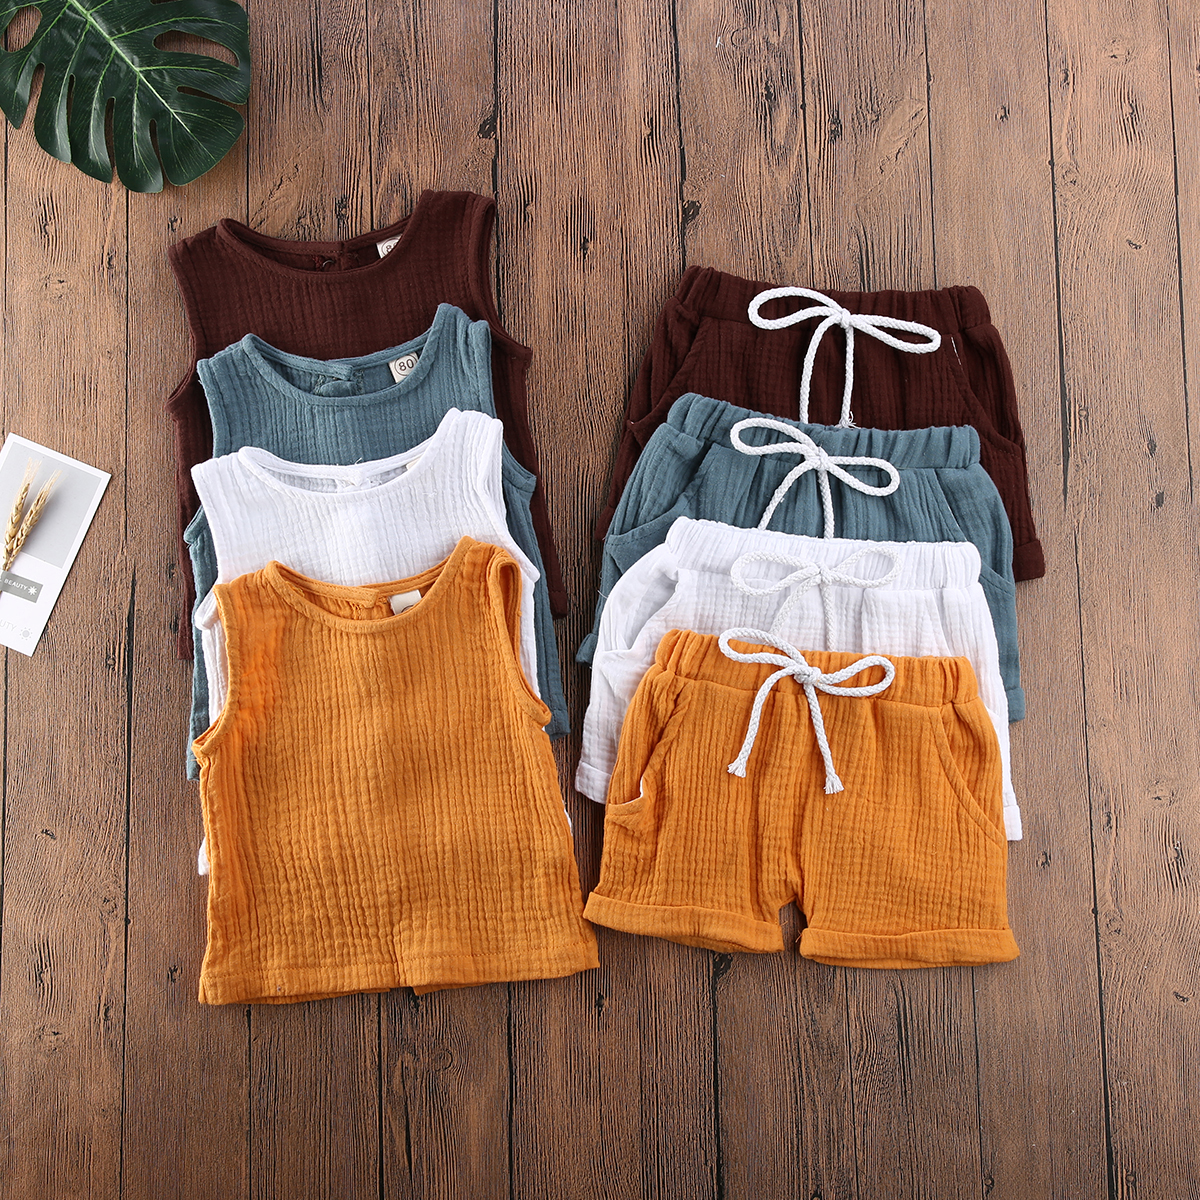 Kids Baby Clothing Suit Cotton&Linen Clothes Outfits Two Pieces Sleeveless Tops Short Pants Summer Outfit 5 COLOR